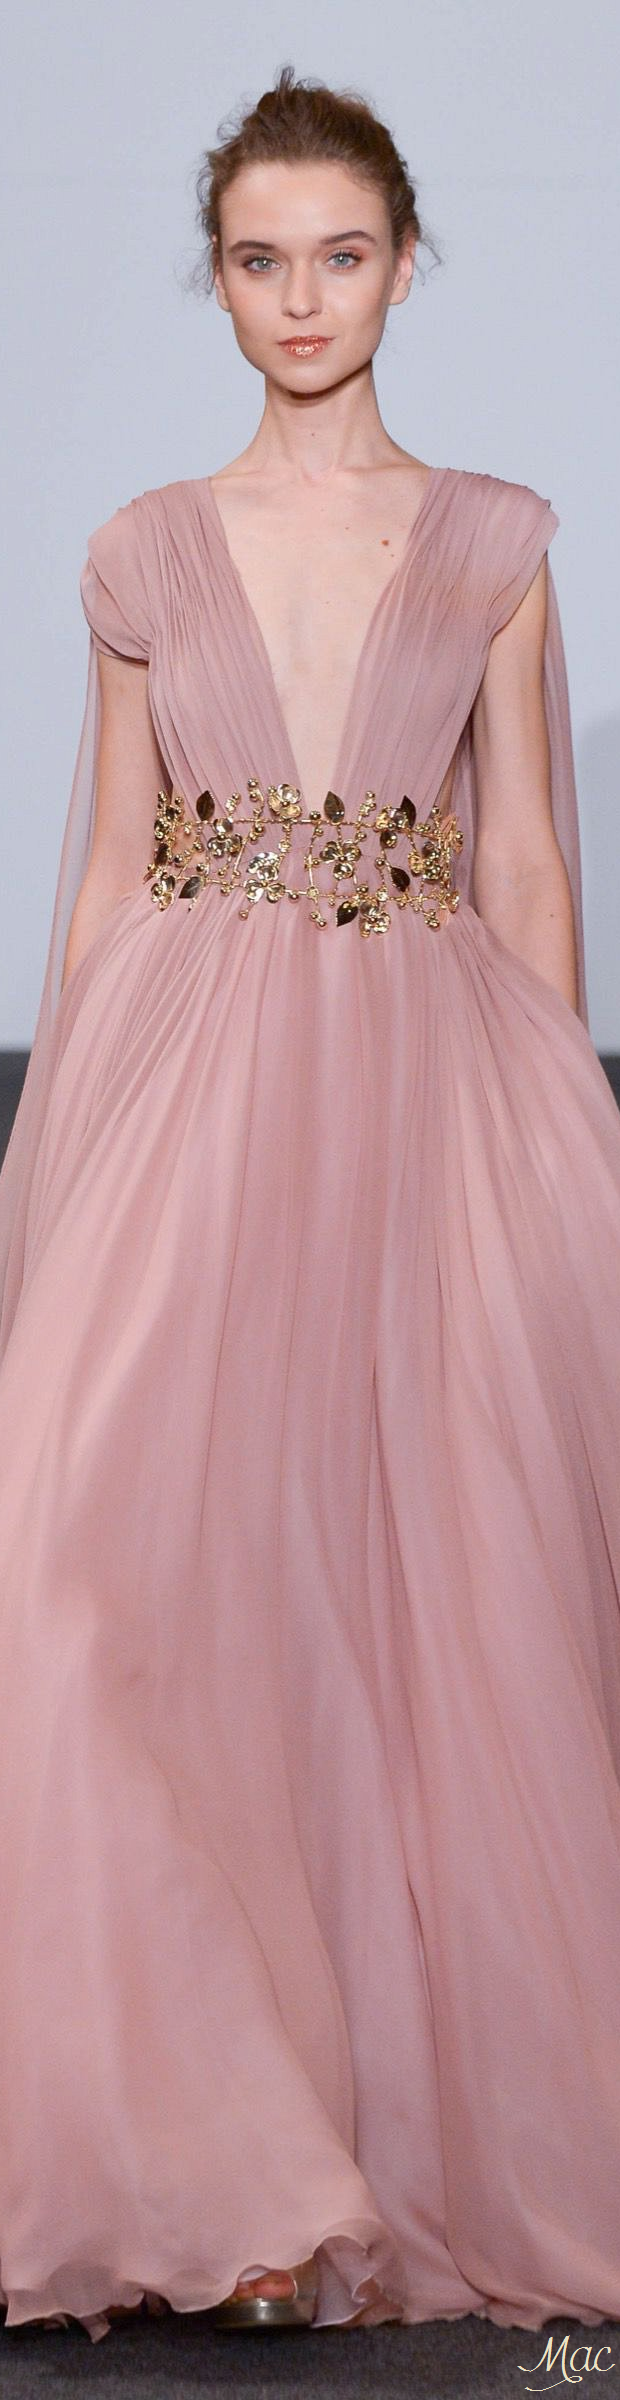 Spring 2016 Haute Couture Dany Atrache | Haute Couture pink & pink ...